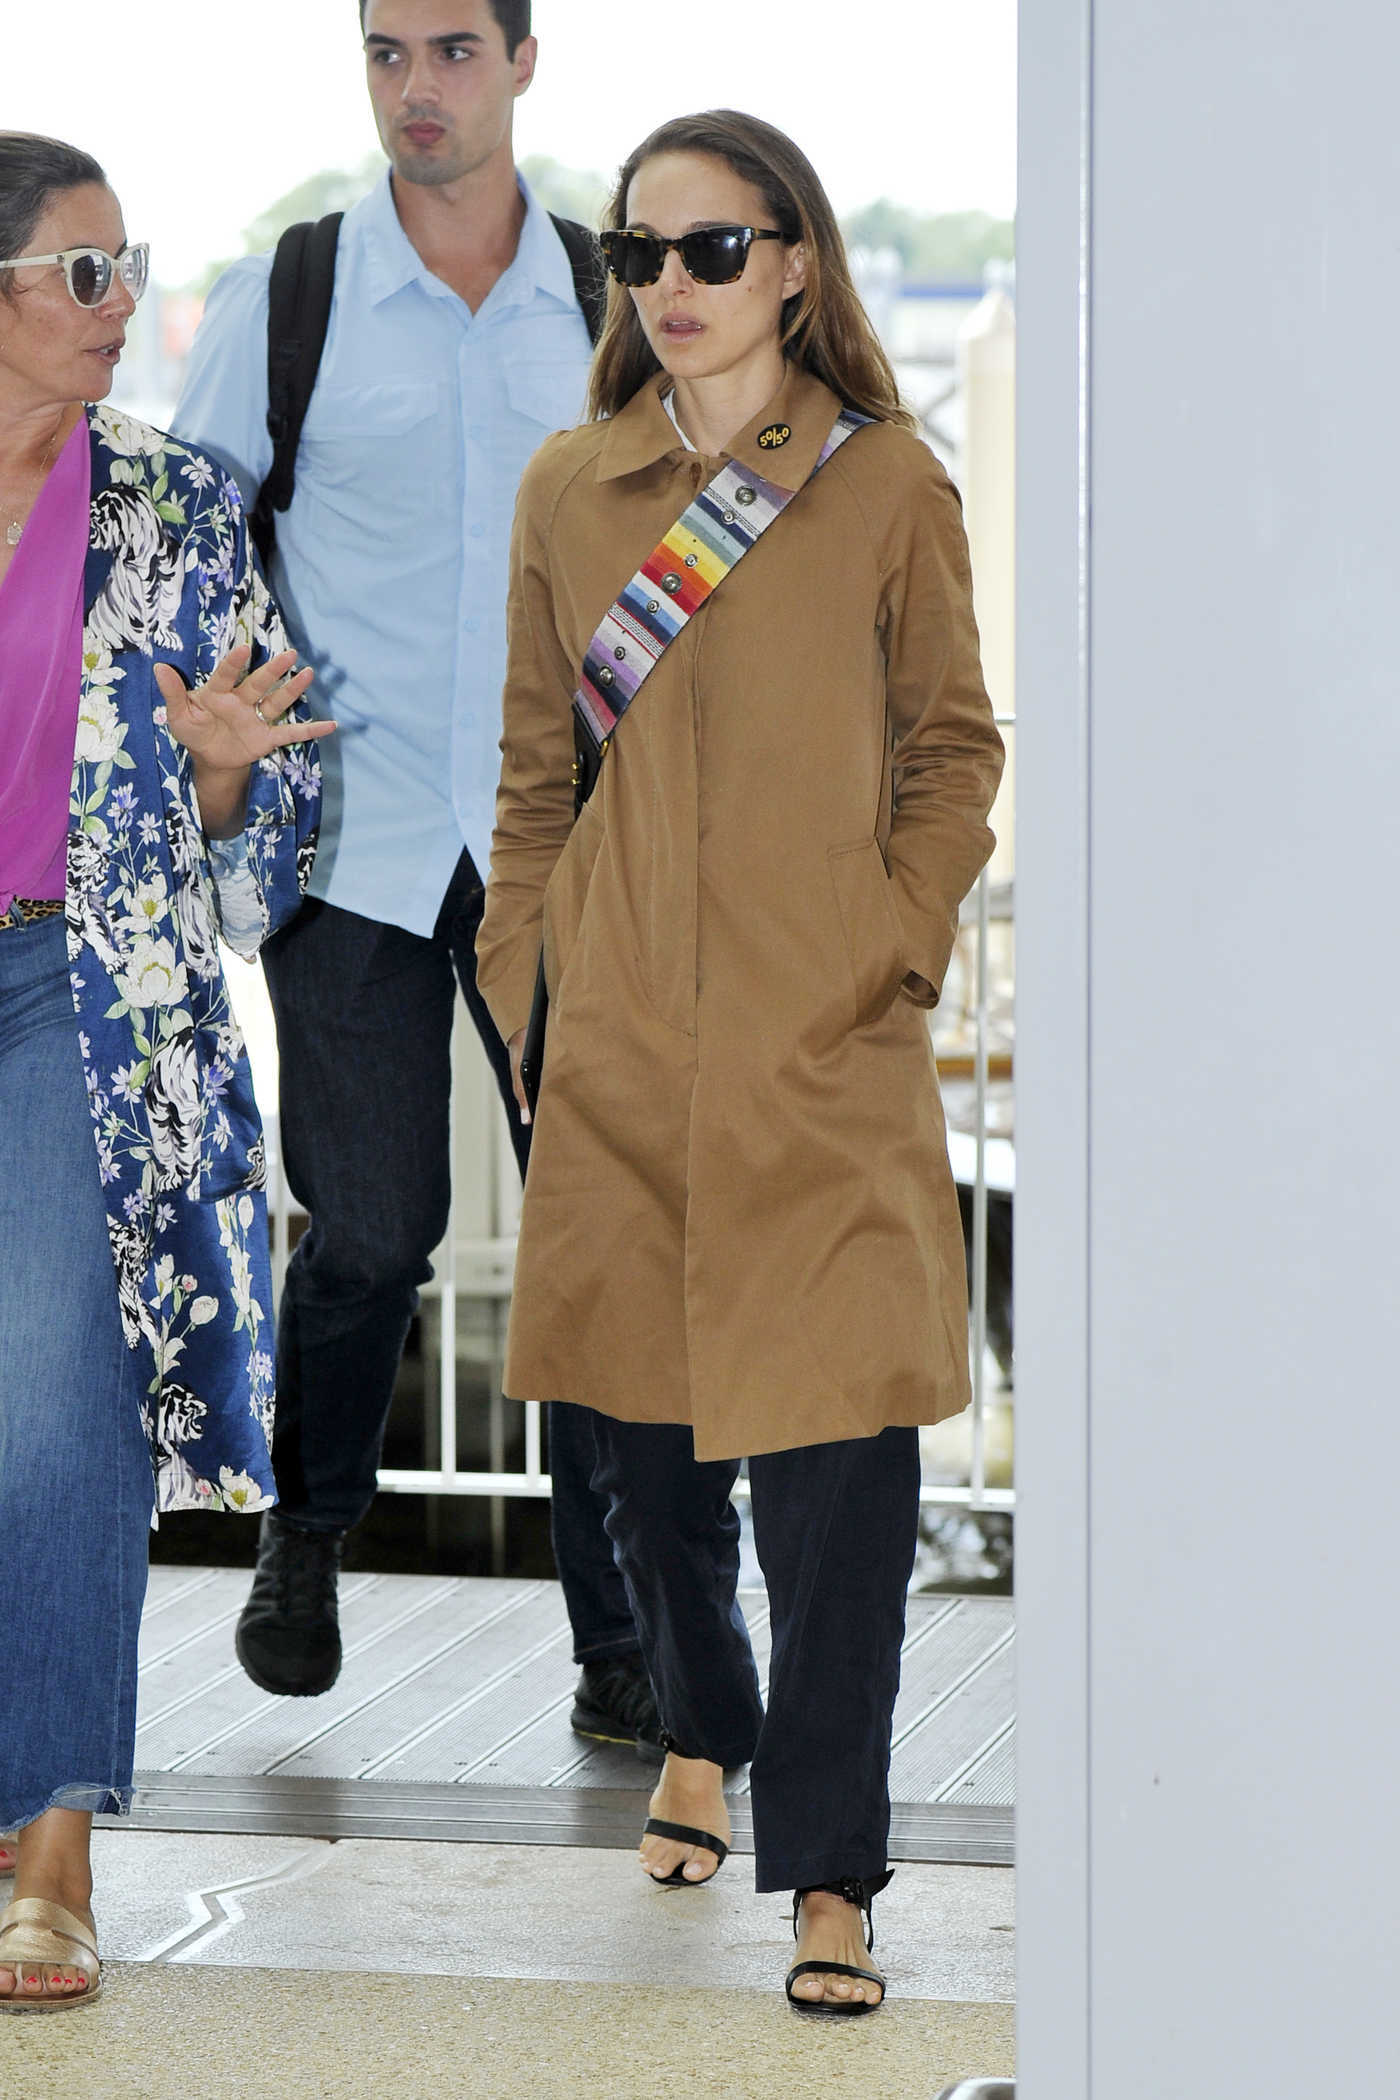 Natalie Portman in a Beige Trench Coat Arrives at Marco Polo Airport in Venice 09/06/2018